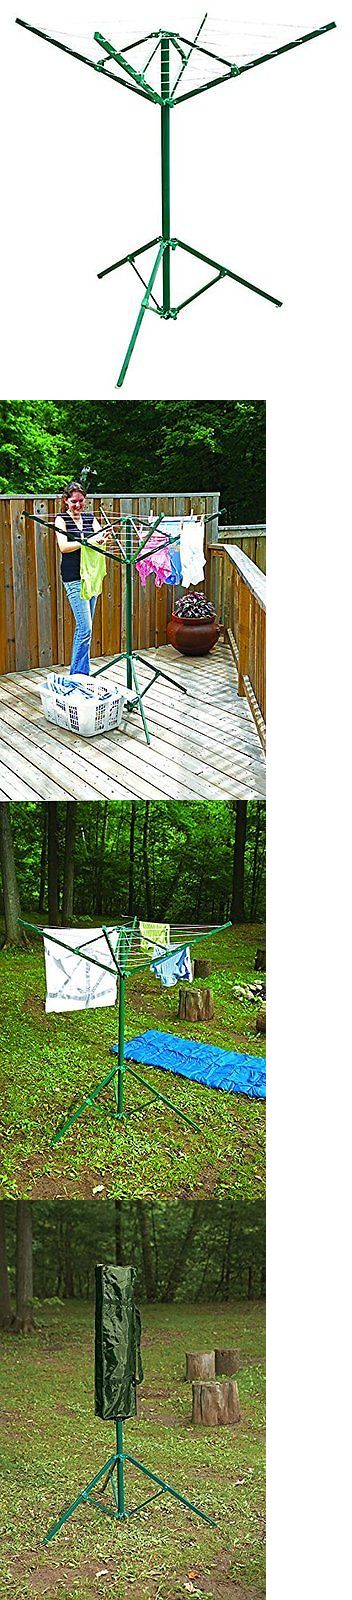 Clotheslines and Laundry Hangers 81241: Portable Outdoor Rotary Clothesline Laundry Dryer Clothes Line Drying Rack New -> BUY IT NOW ONLY: $41.04 on eBay!